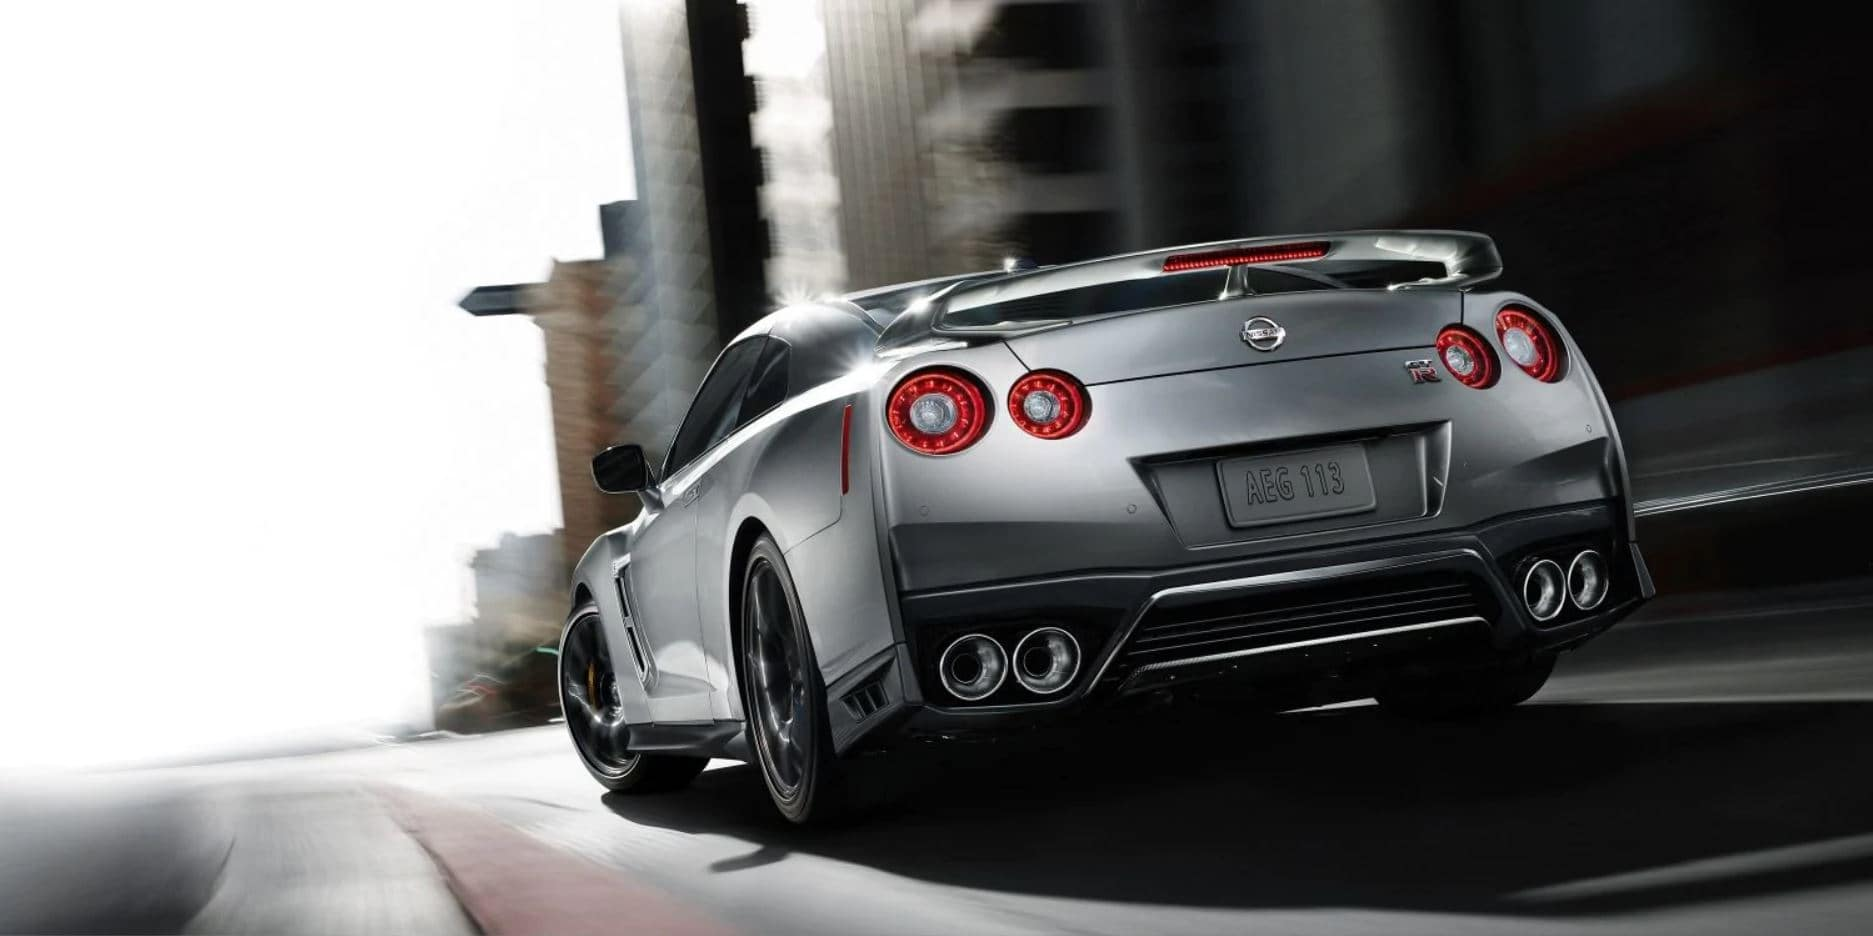 Chevy Corvette Z06 Vs Nissan Gt R Godzilla The Legend Engine Coolant Buyers Seeking Something Different In Their Sports Car Will Appreciate Creativeness Of Its Nontraditional Looks And Borderline Luxury Cabin